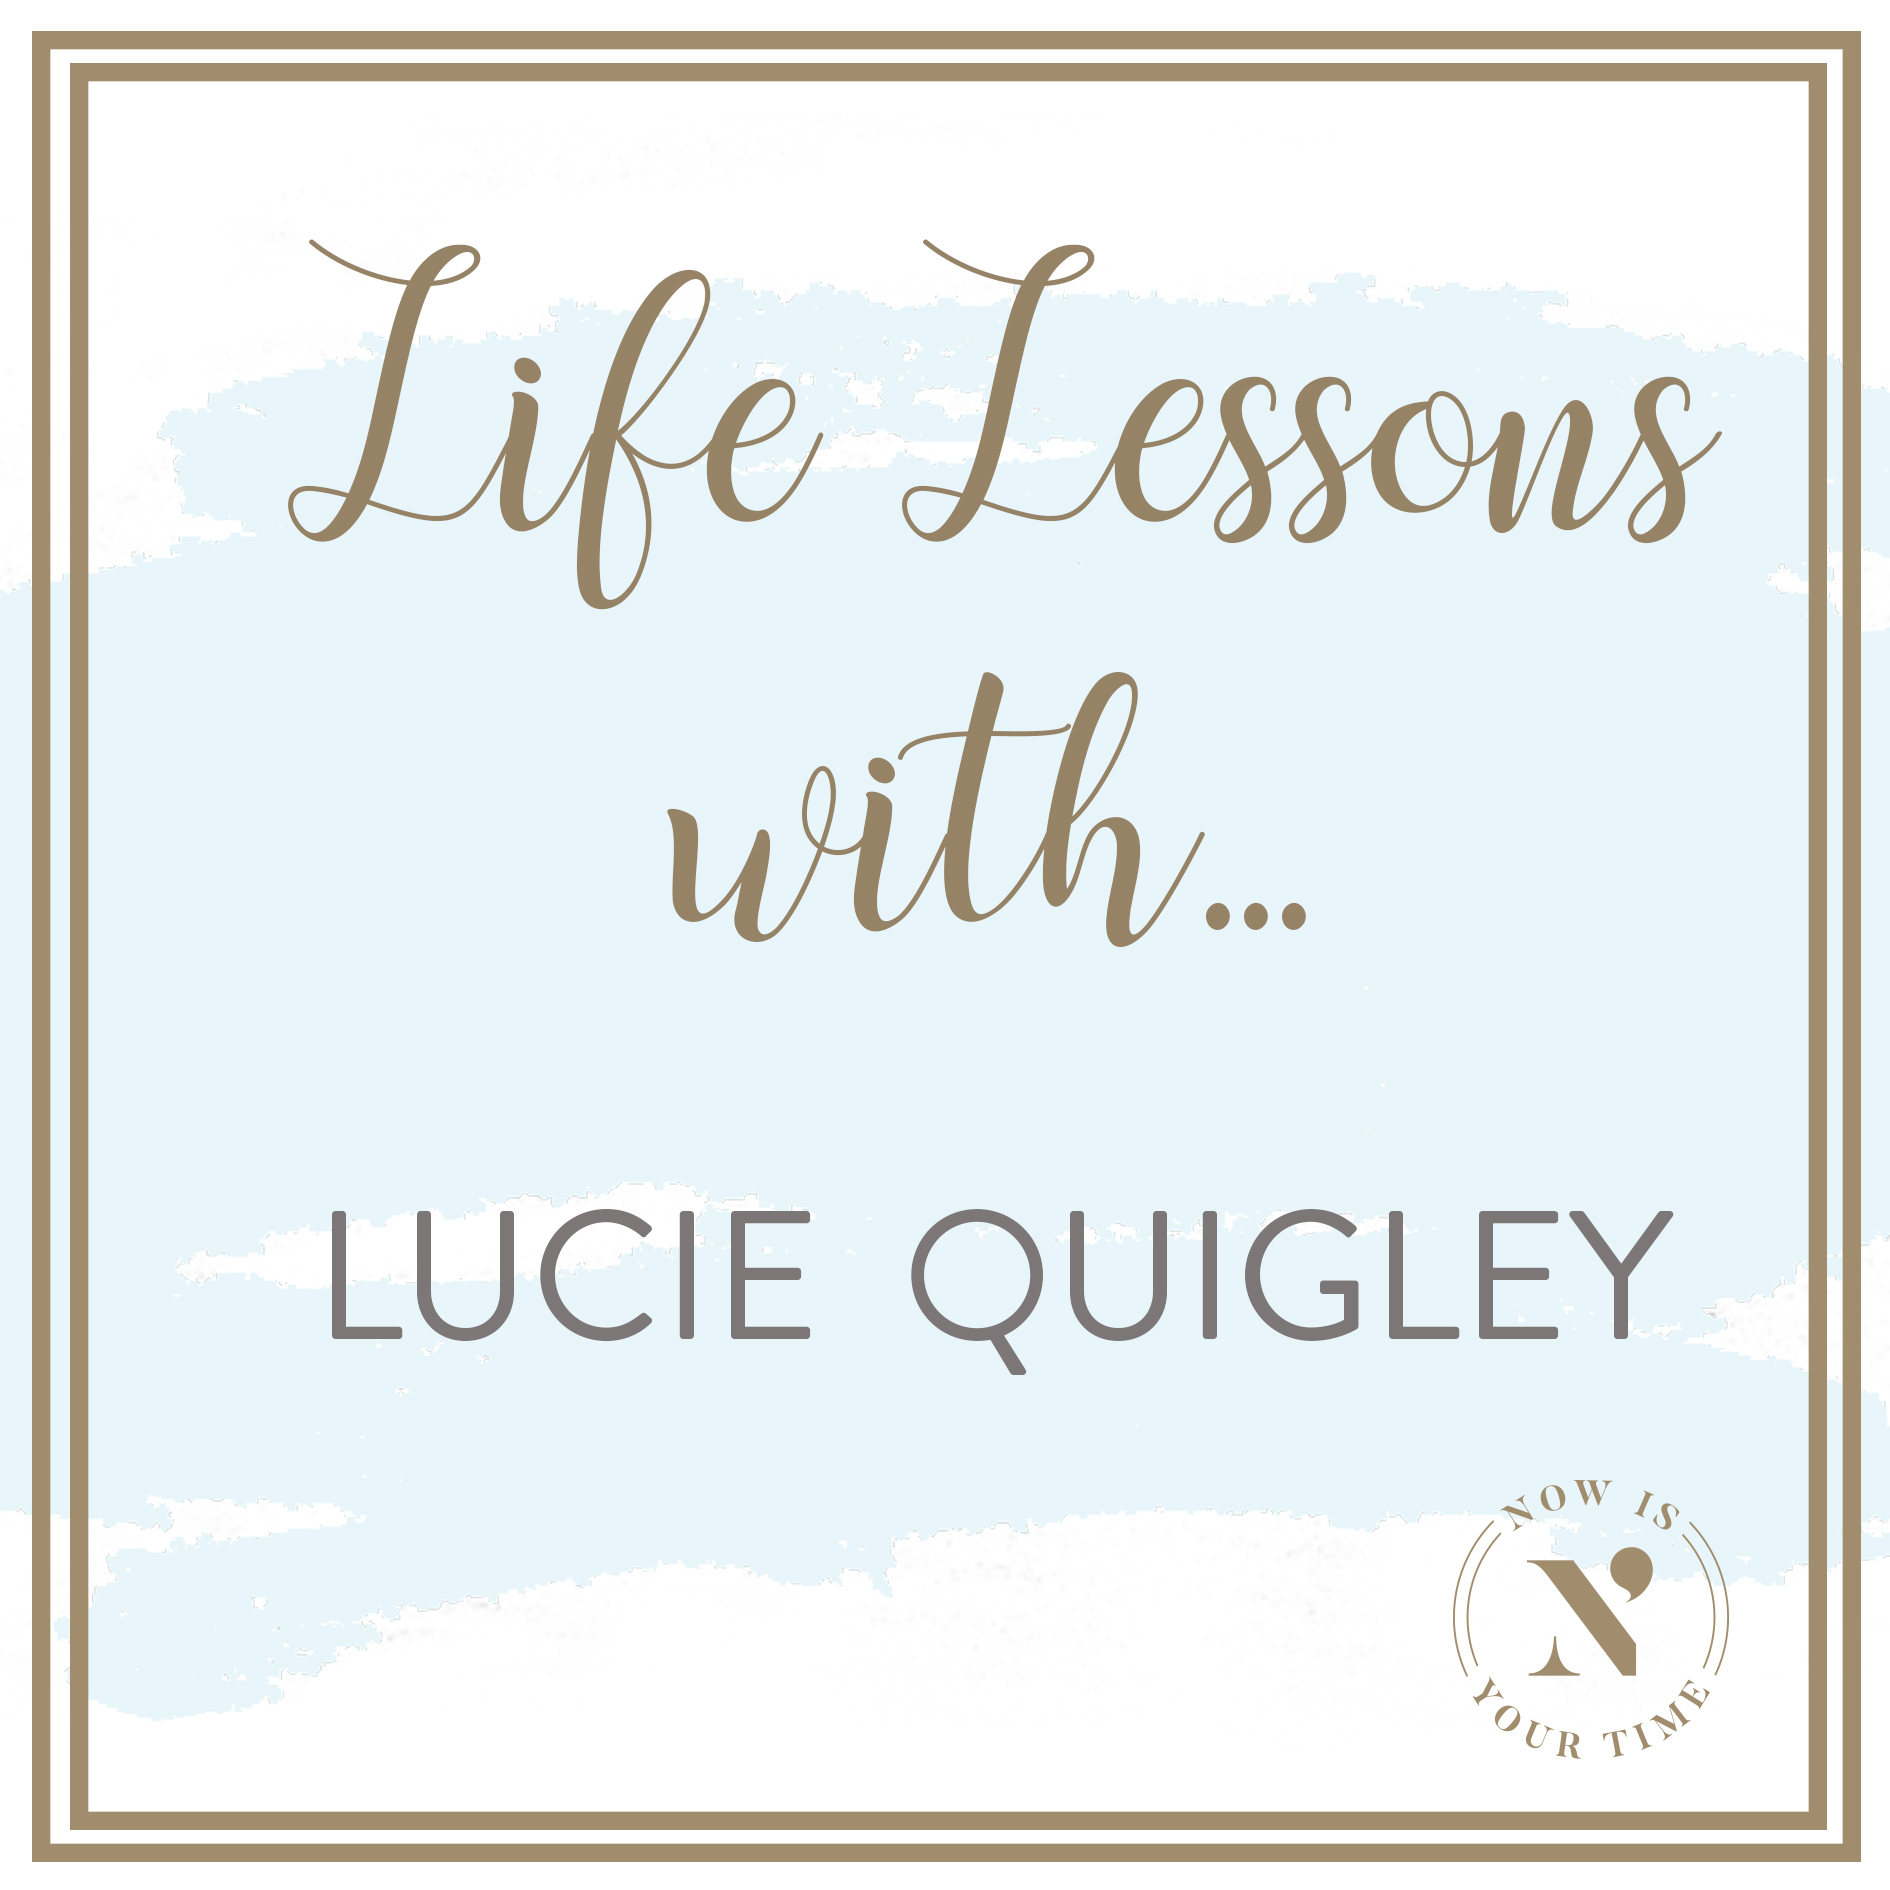 Life Lessons with podcast artwork - Lucie Quigley.jpg